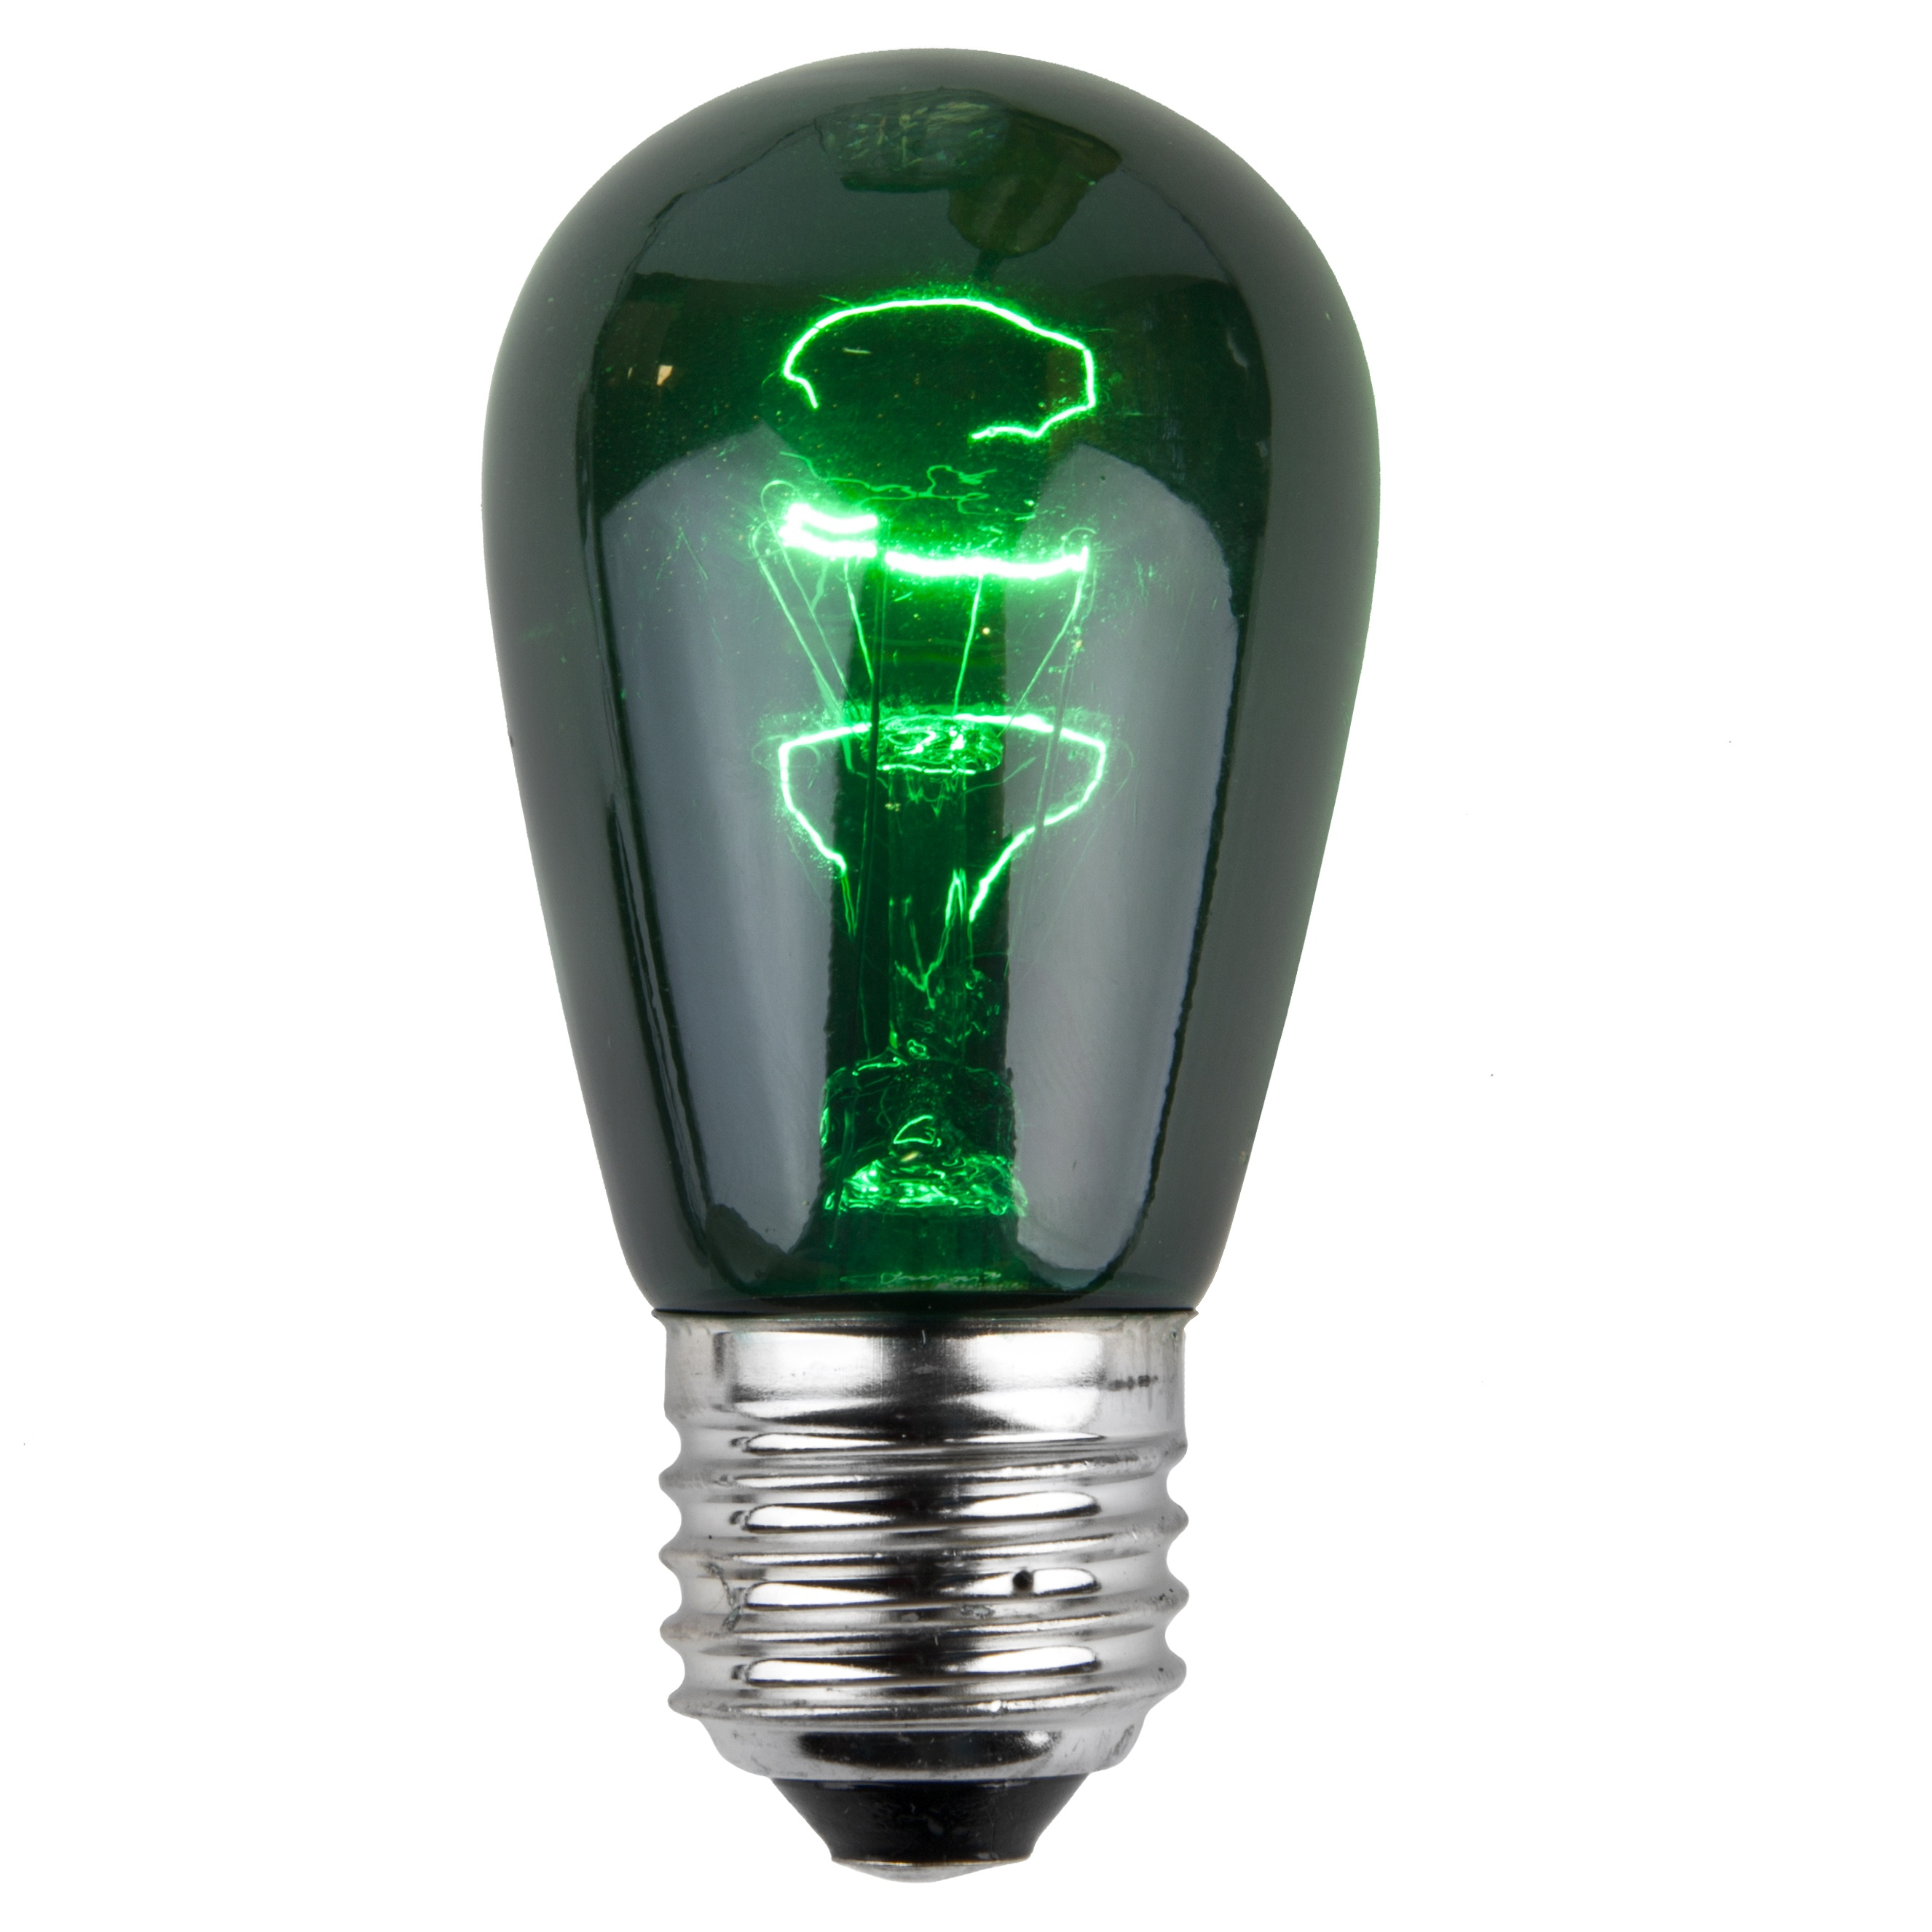 11S14 Transparent Green Incandescent Sign Lamp